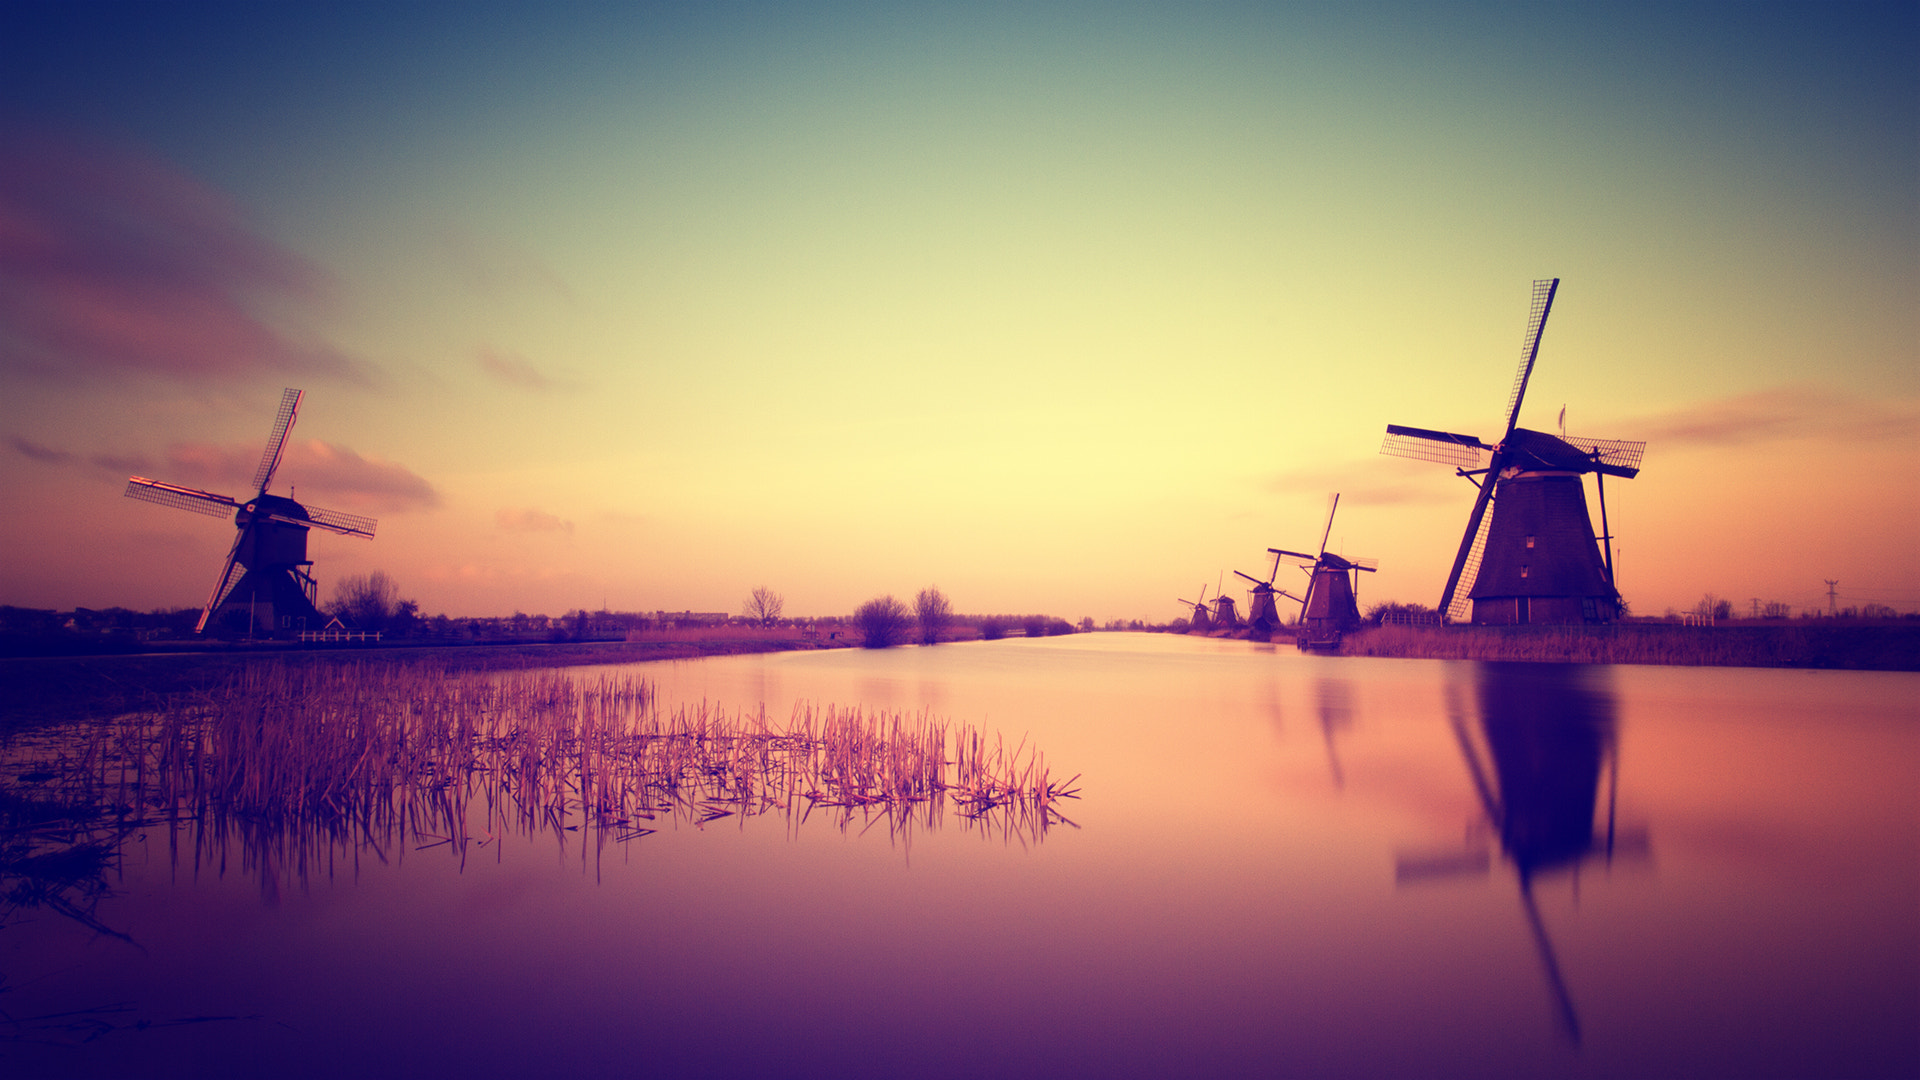 Photograph Beautiful Netherlands by Kees Smans on 500px